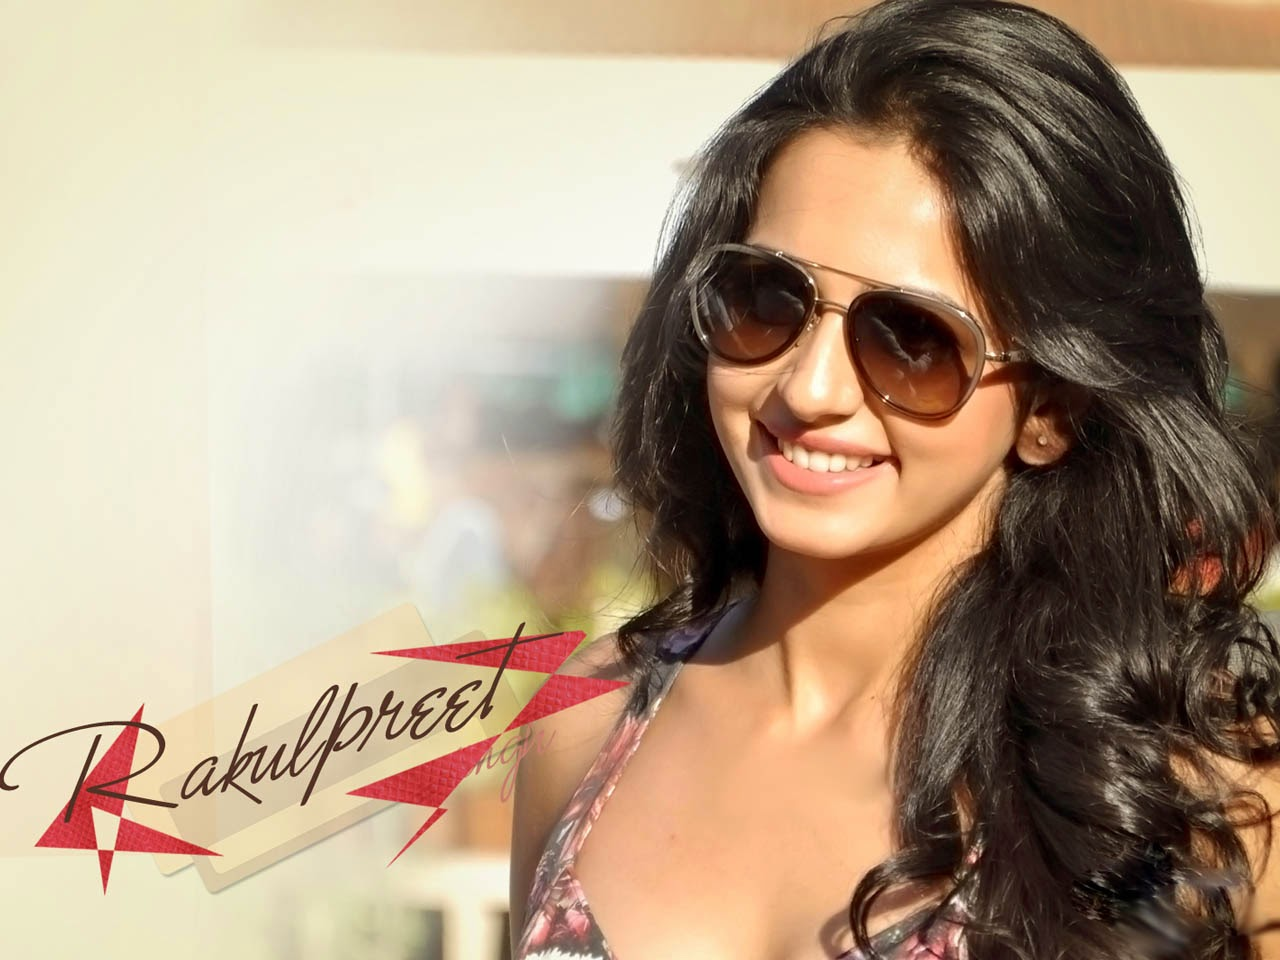 Hd wallpaper yaariyan - Hd Rakul Preet Rakul Preet Singh Hd Wallpapers In Yaariyan